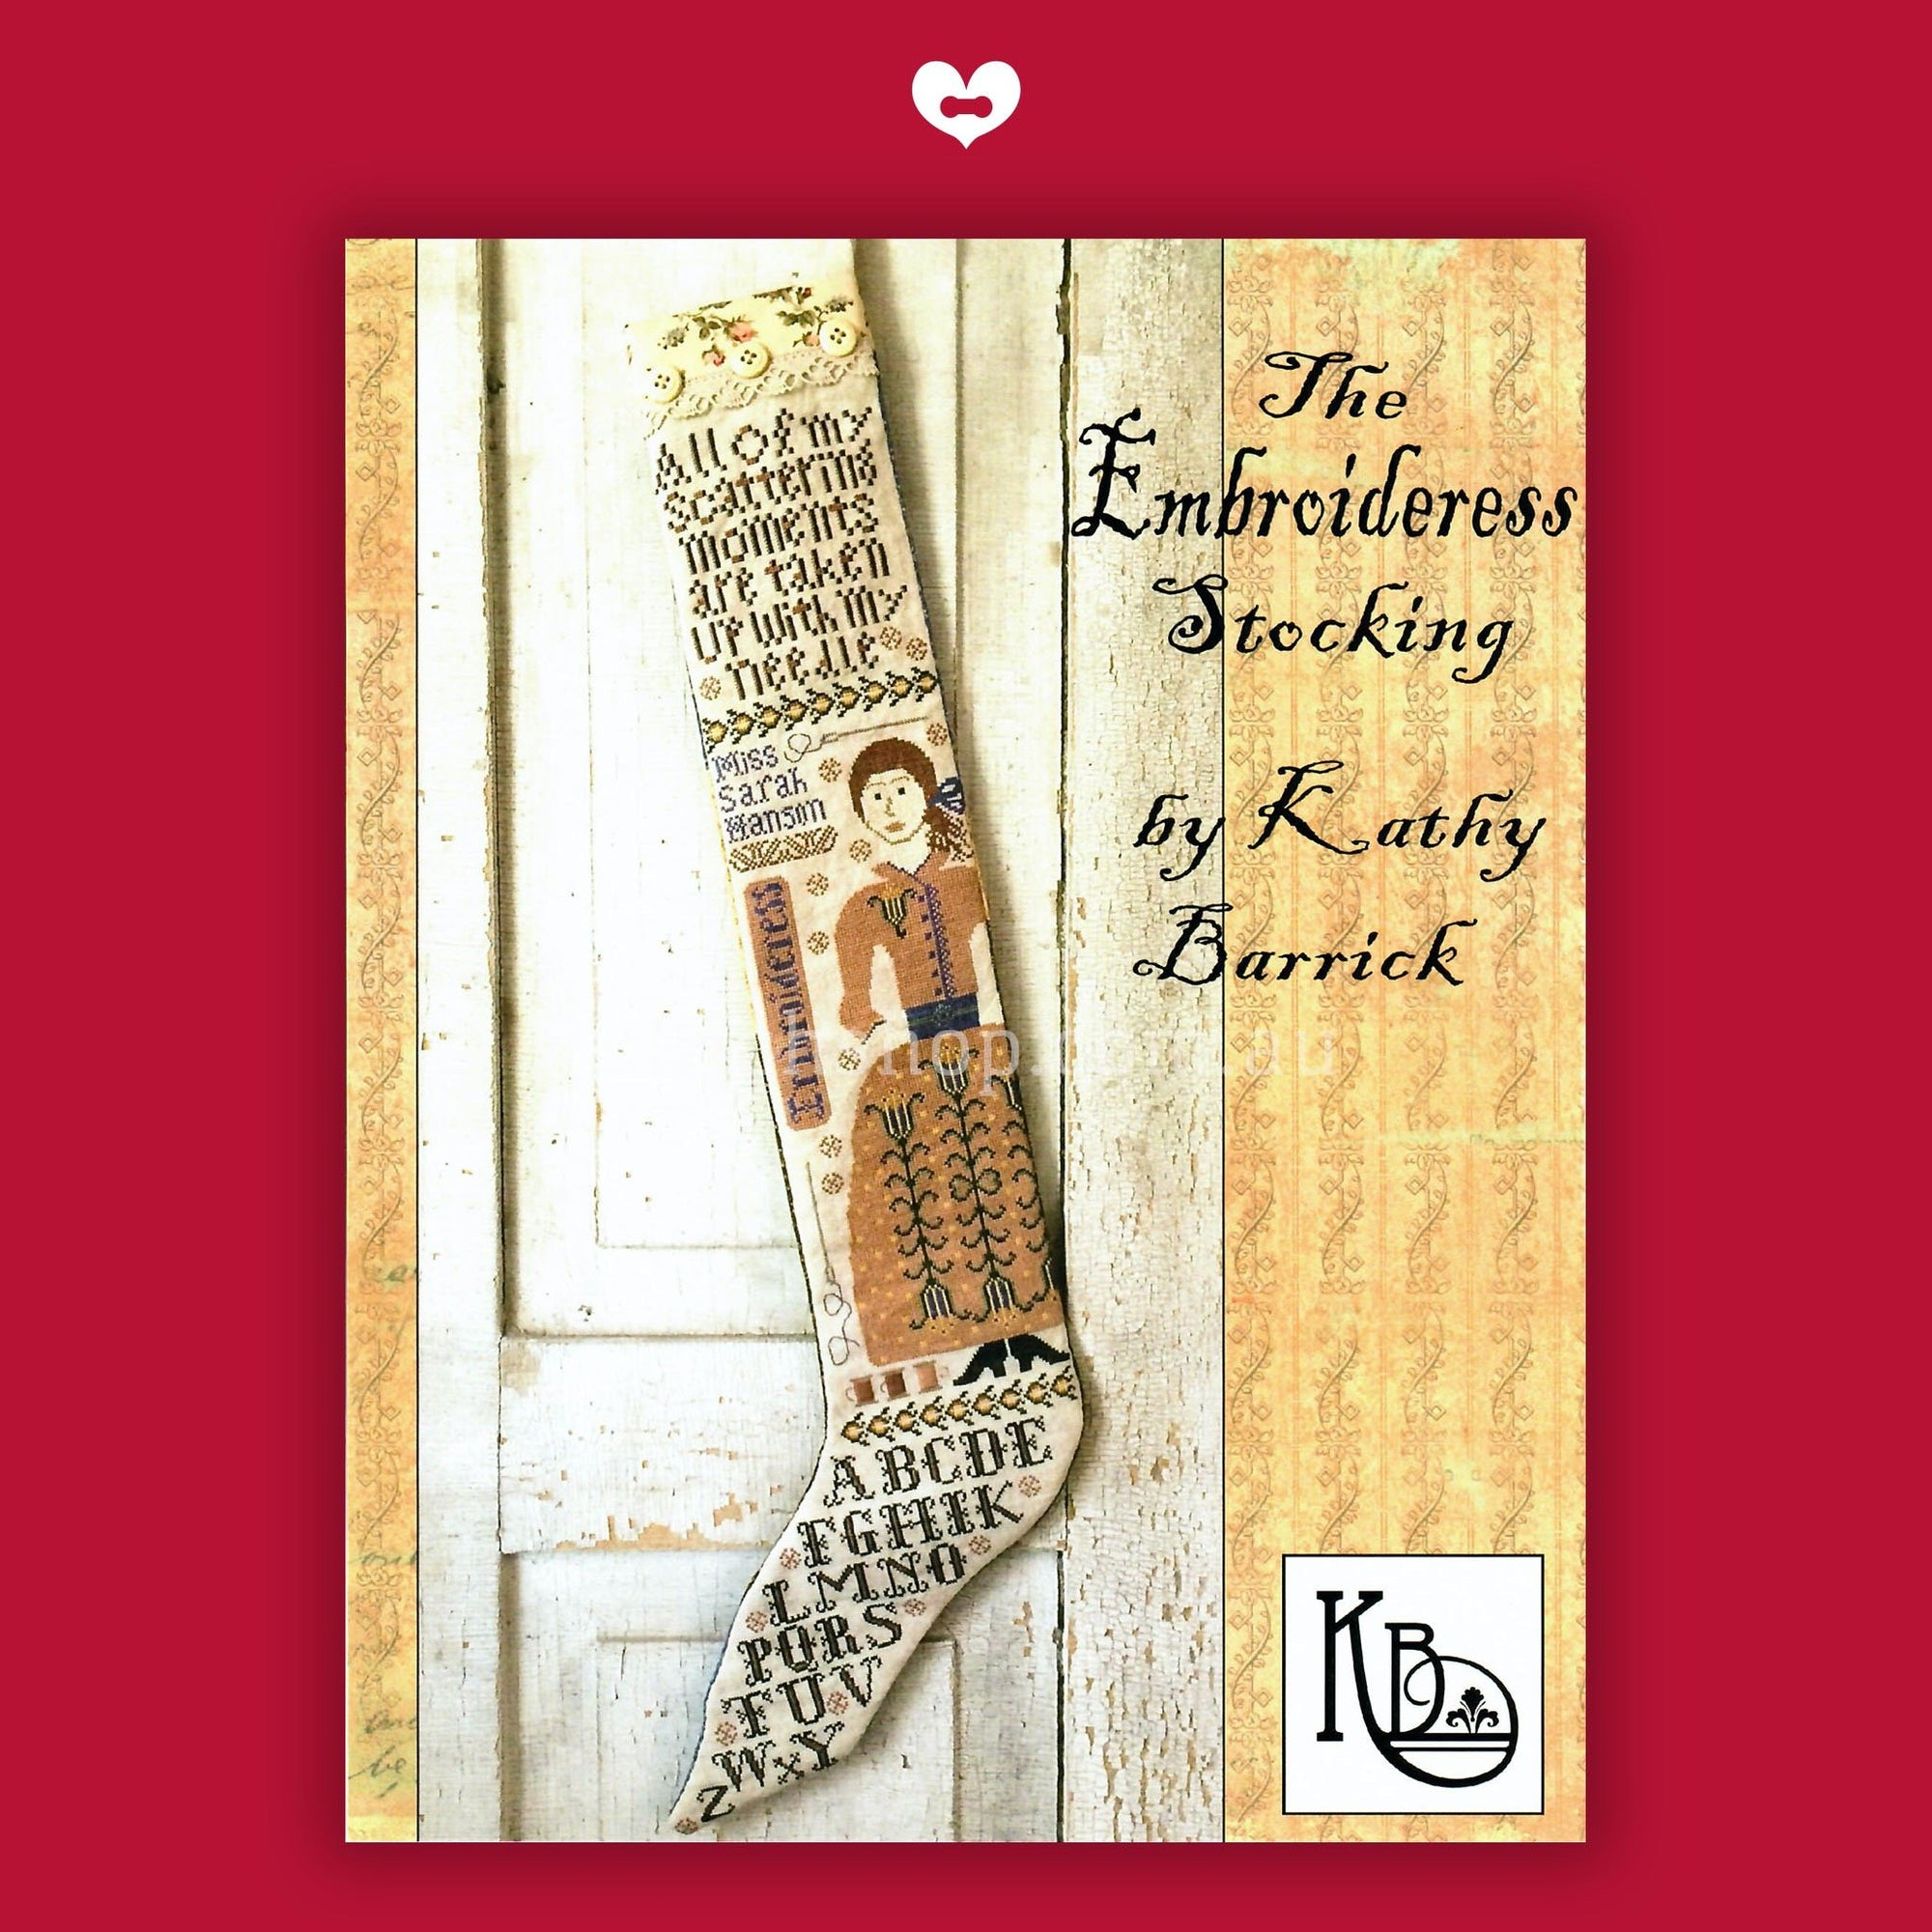 The Embroideress Stocking